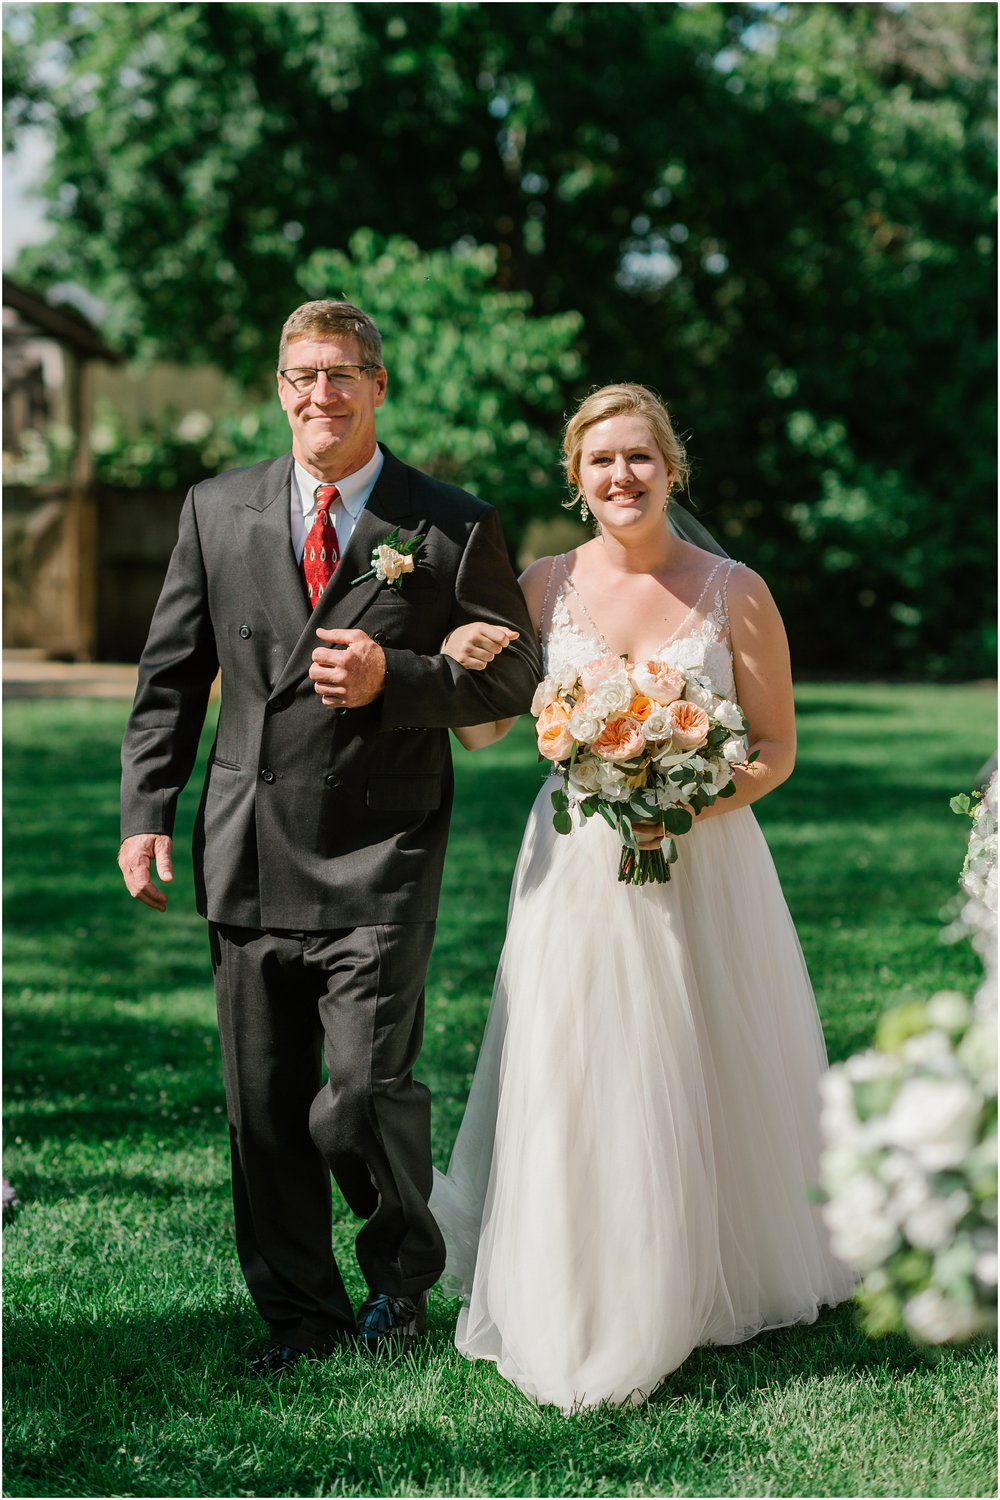 Rebecca_Shehorn_Photography_Indianapolis_Wedding_Photographer_8504.jpg